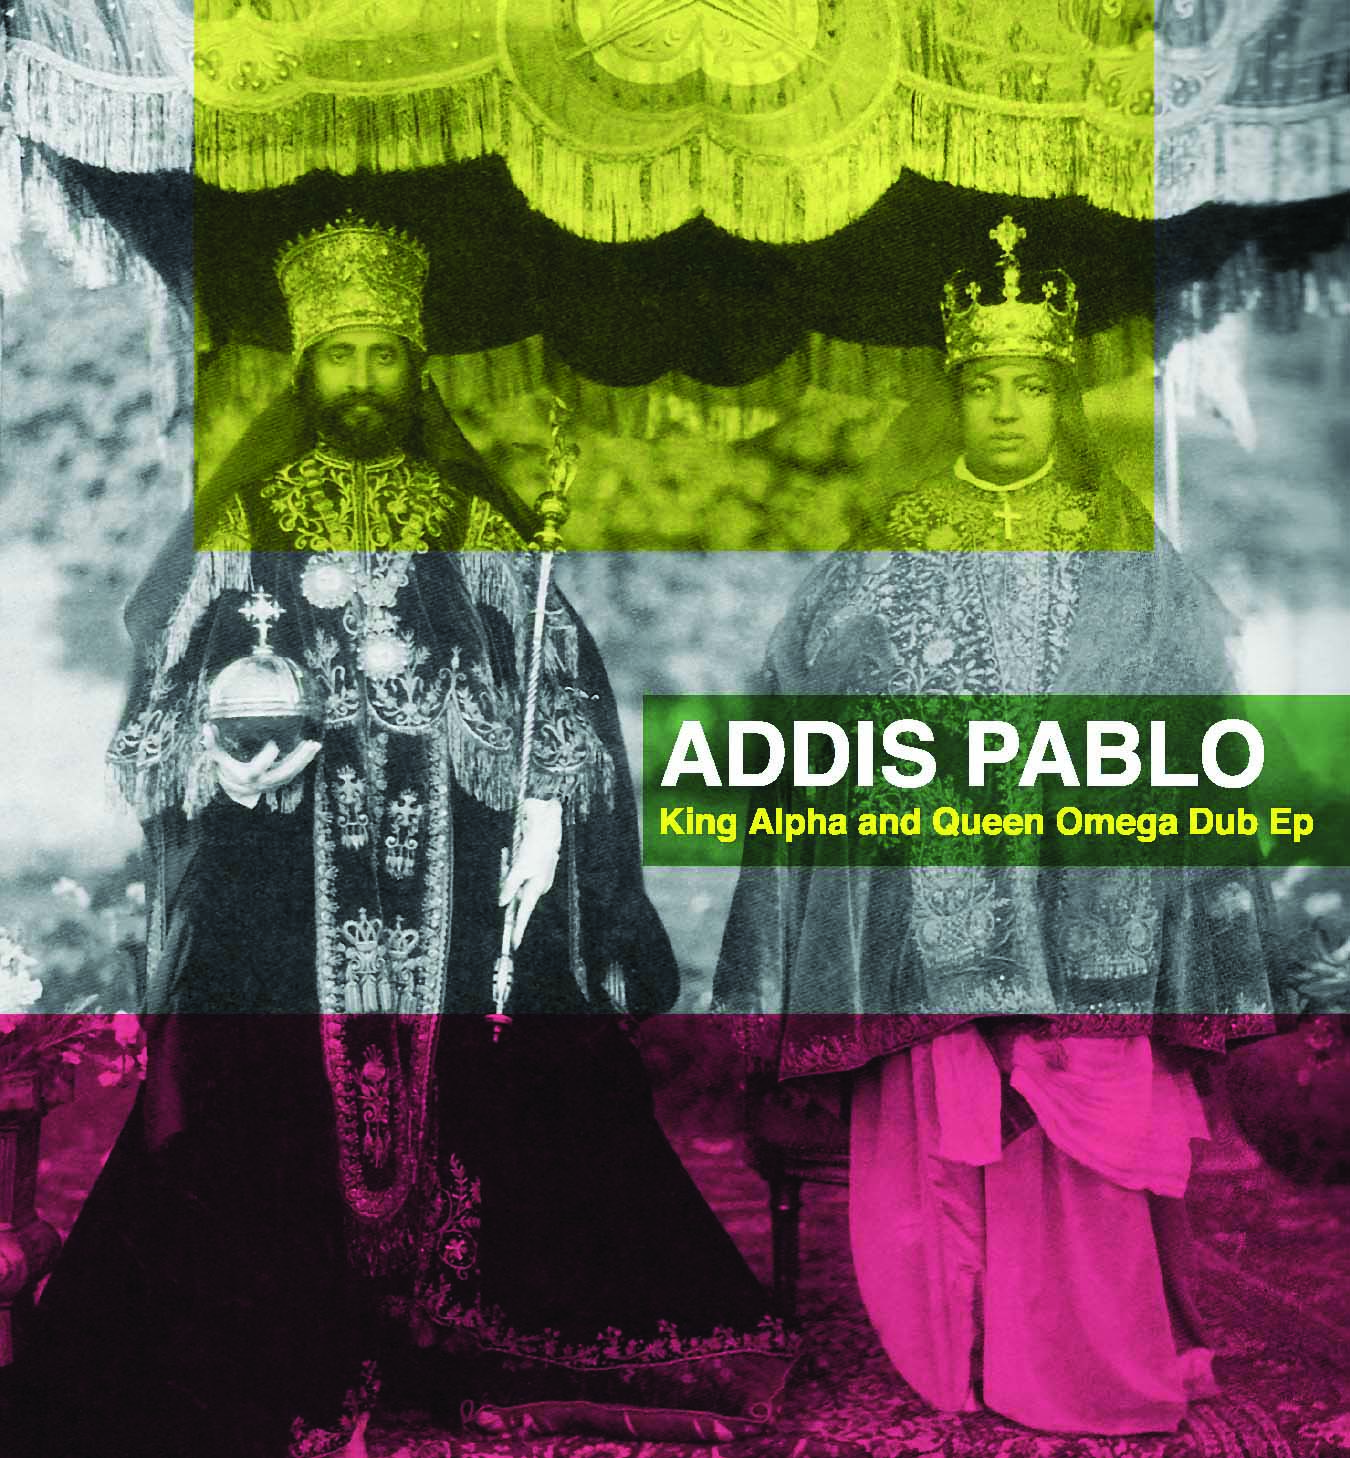 addis_pablo_KAQO_final_PRINT.jpg